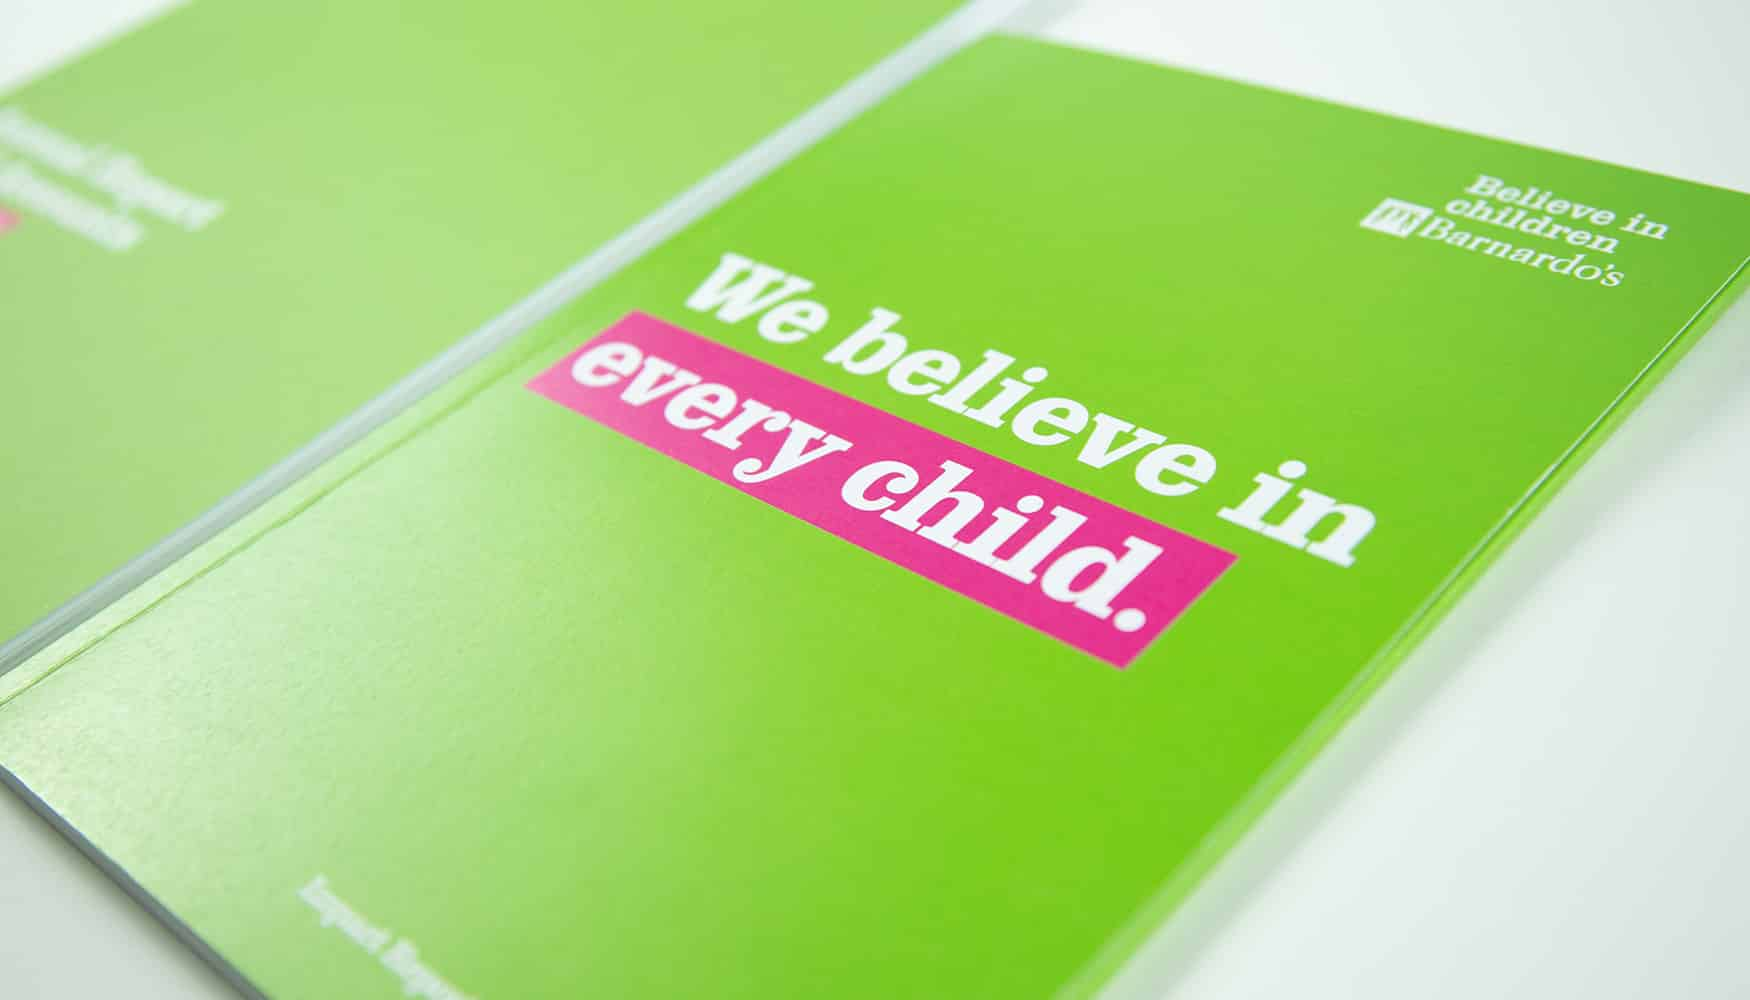 Barnardo's impact report 2019 covers